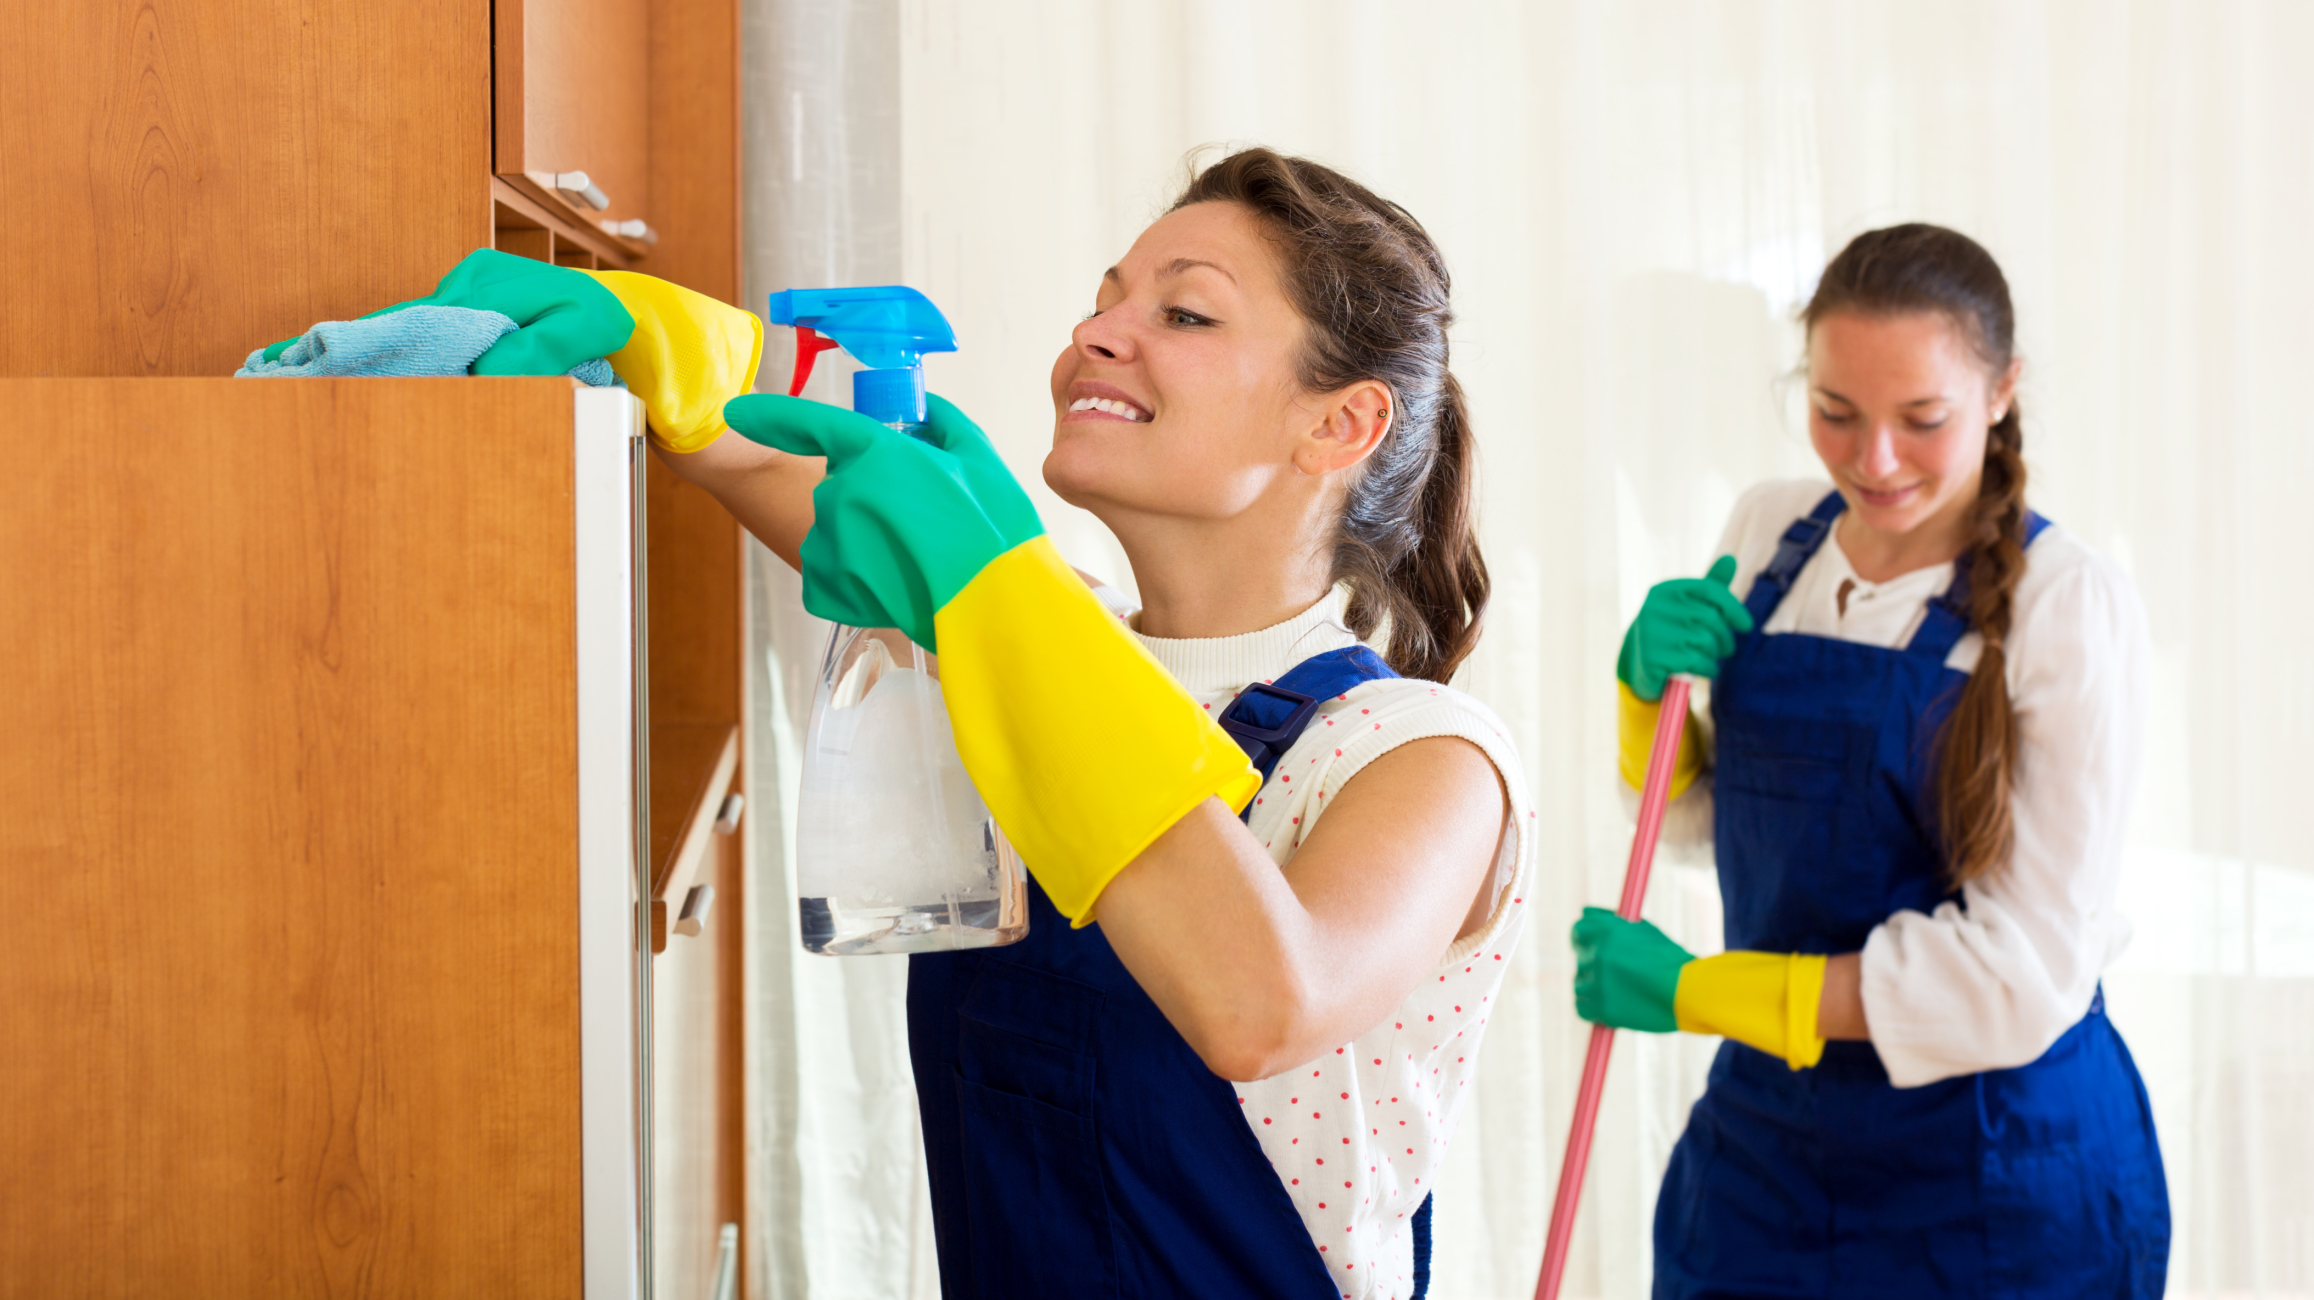 Our maids, and cleaning ladies in Toronto, York, North York, and East York